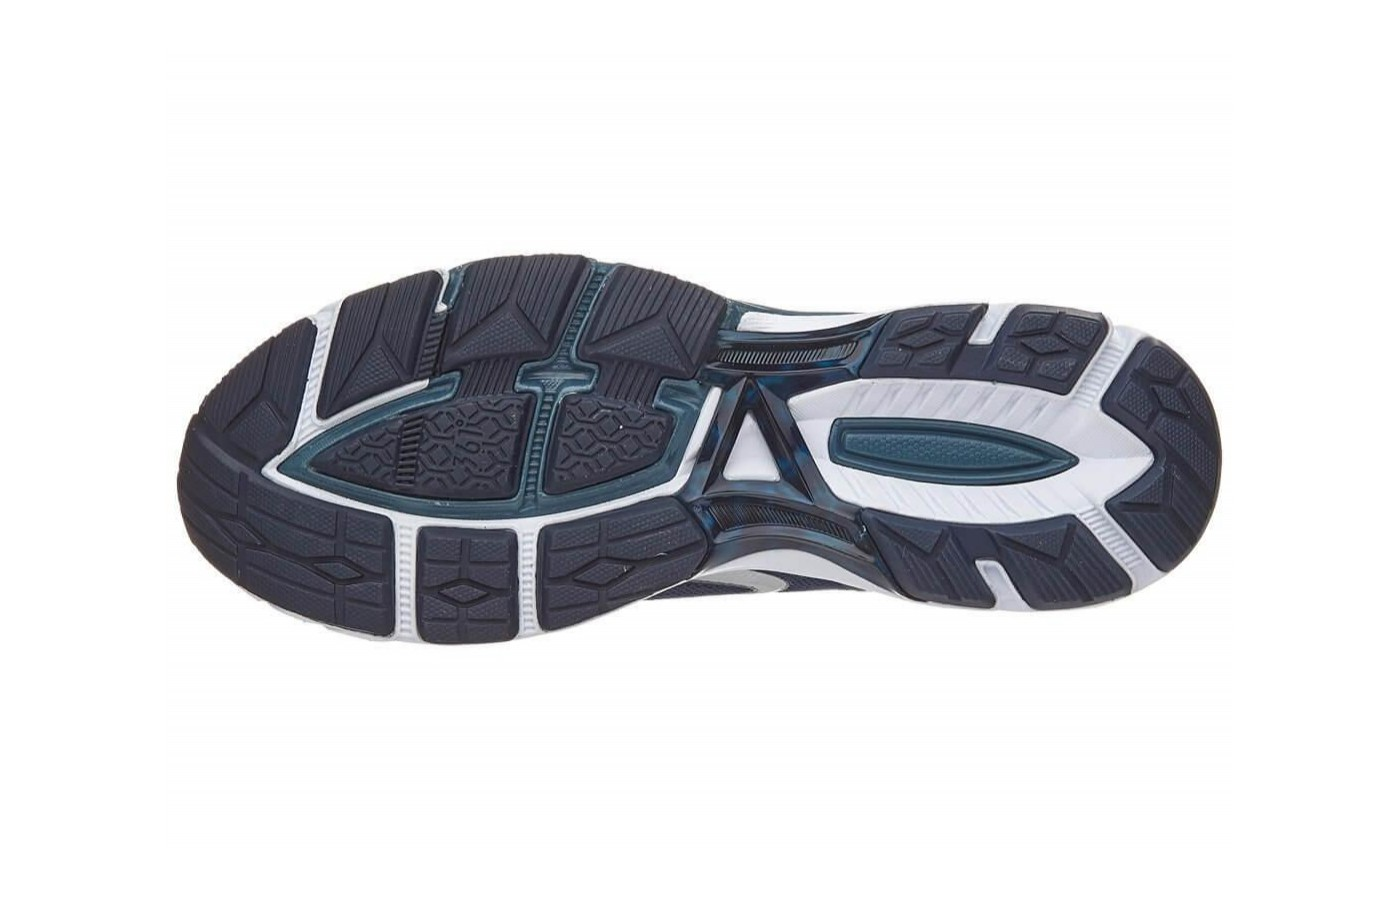 The 361 Spire 2 has a blown rubber outsole